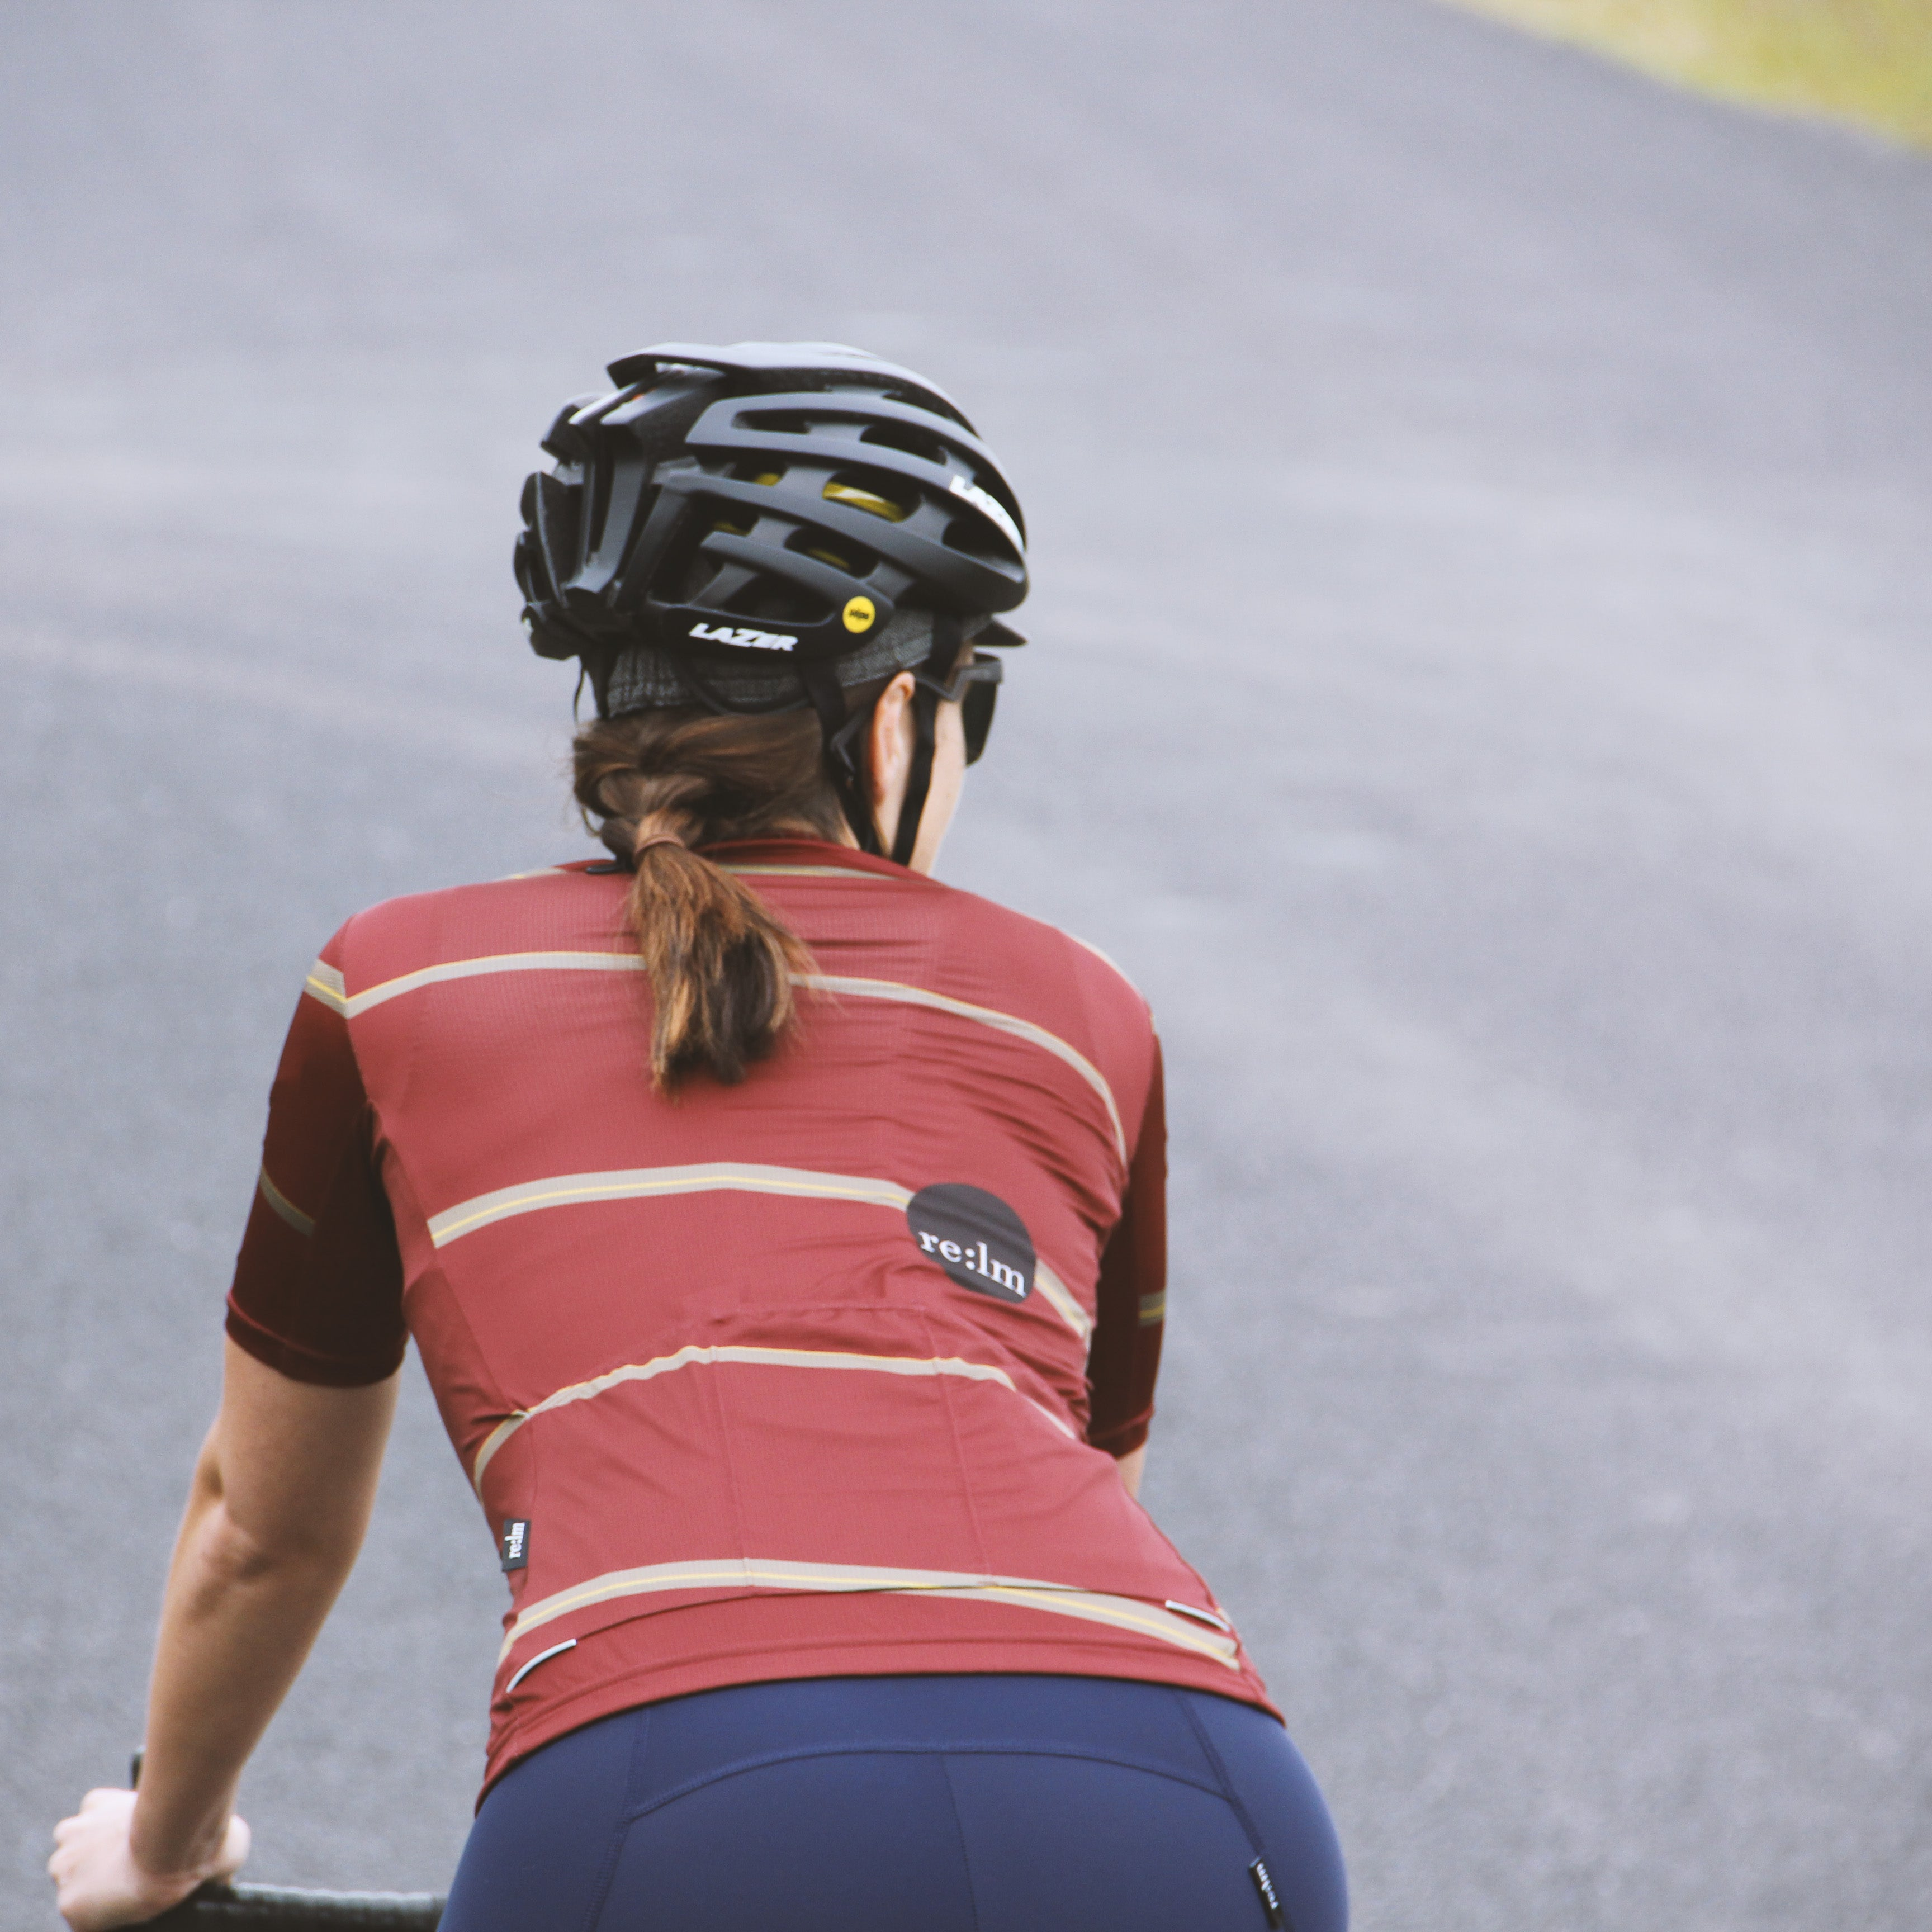 Woman riding bike wearing Relm Cycling jersey in offset design and Lazer helmet